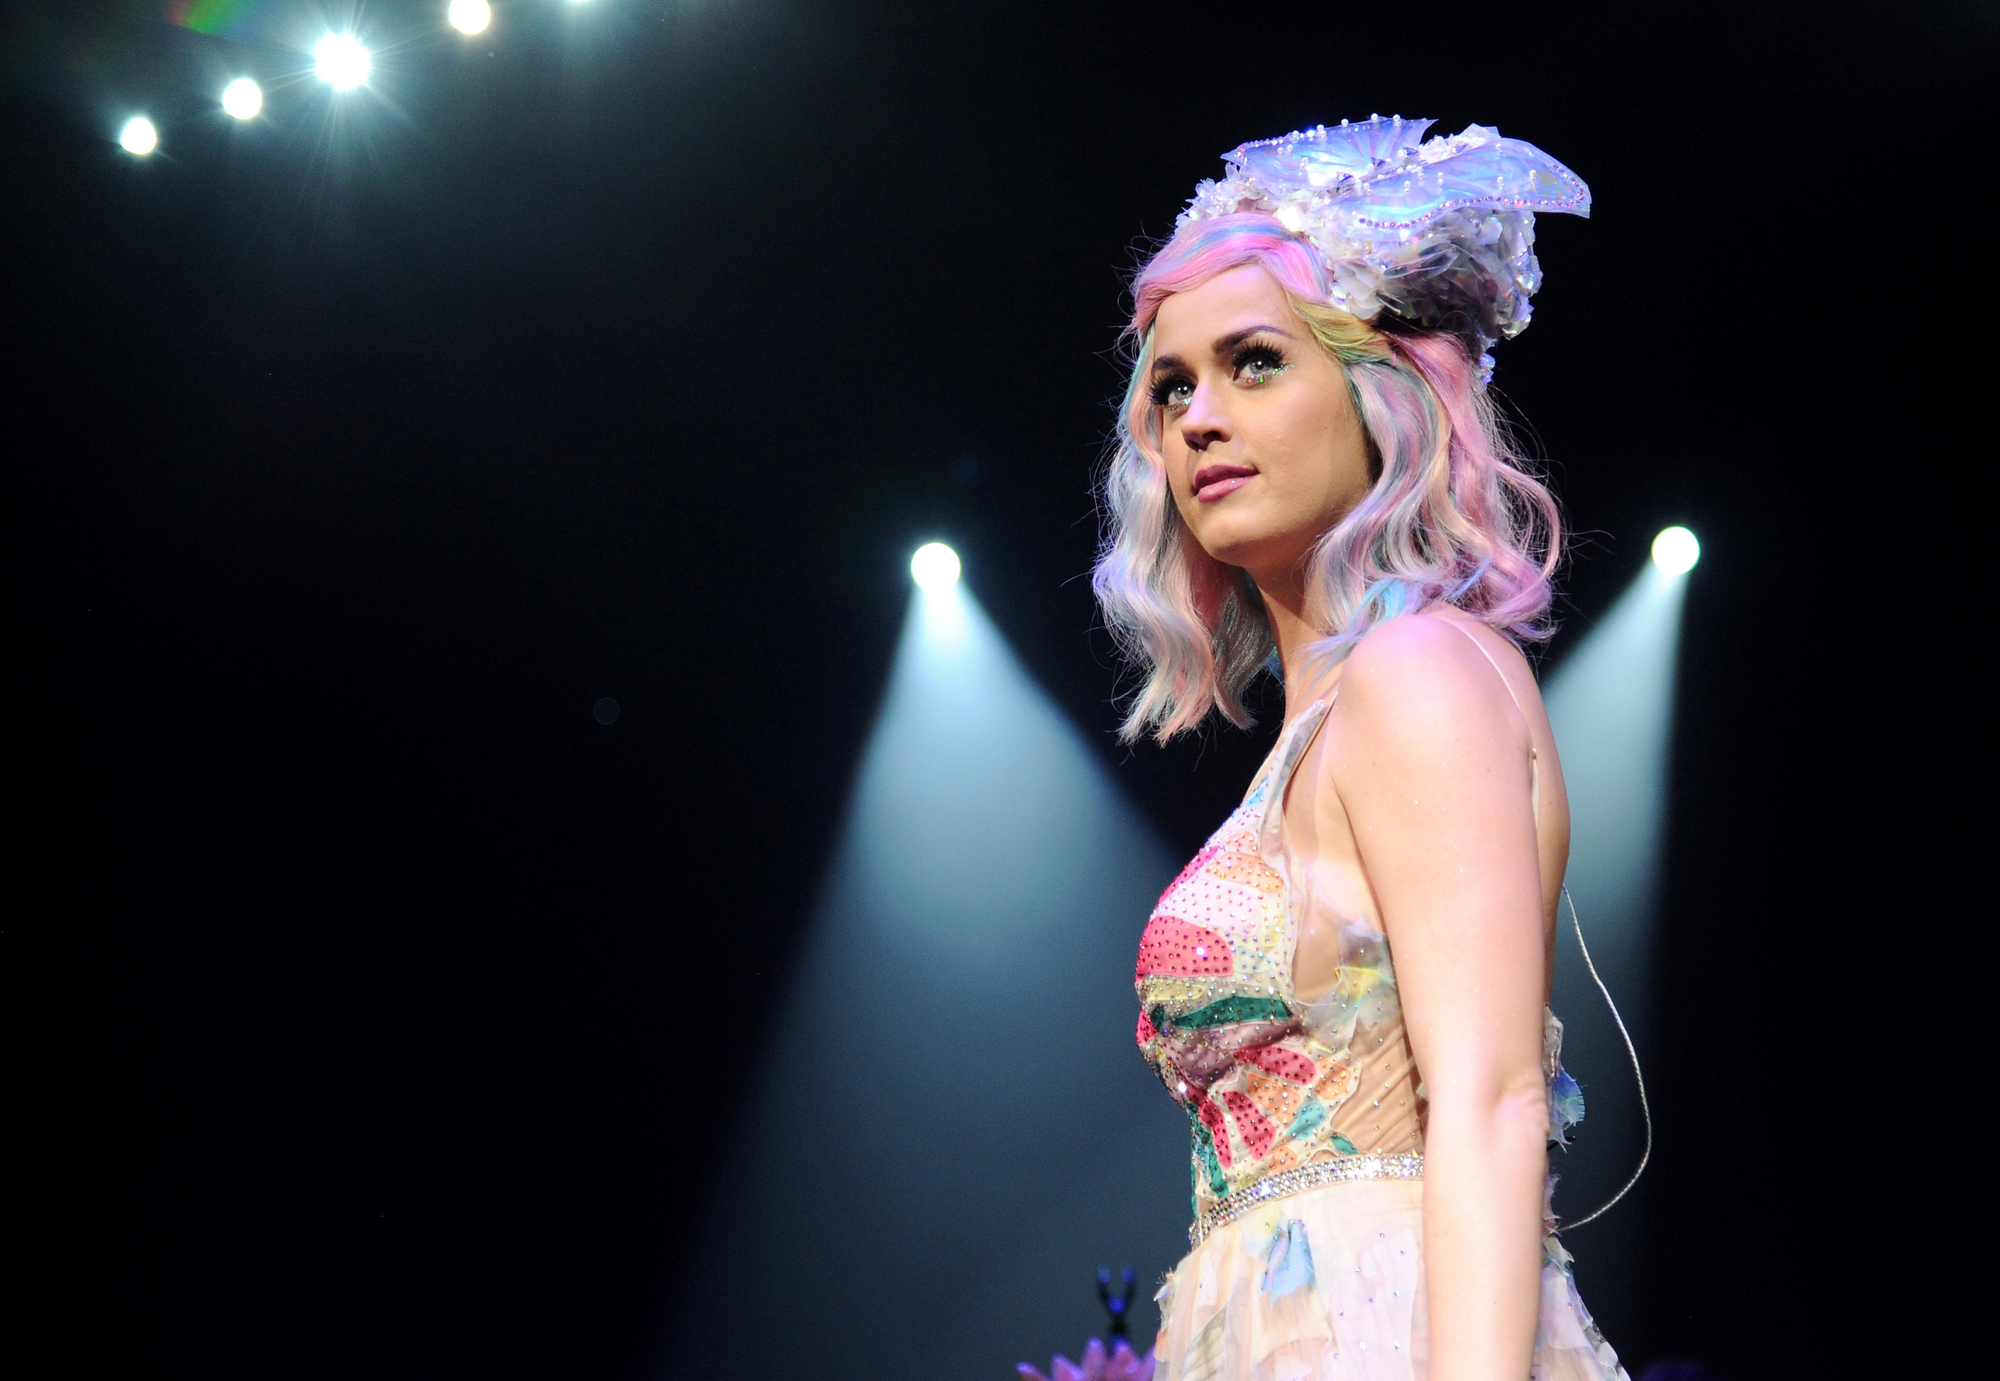 Katy Perry performs onstage during  The Prismatic World Tour  at the Verizon Center on June 24, 2014 in Washington, DC.